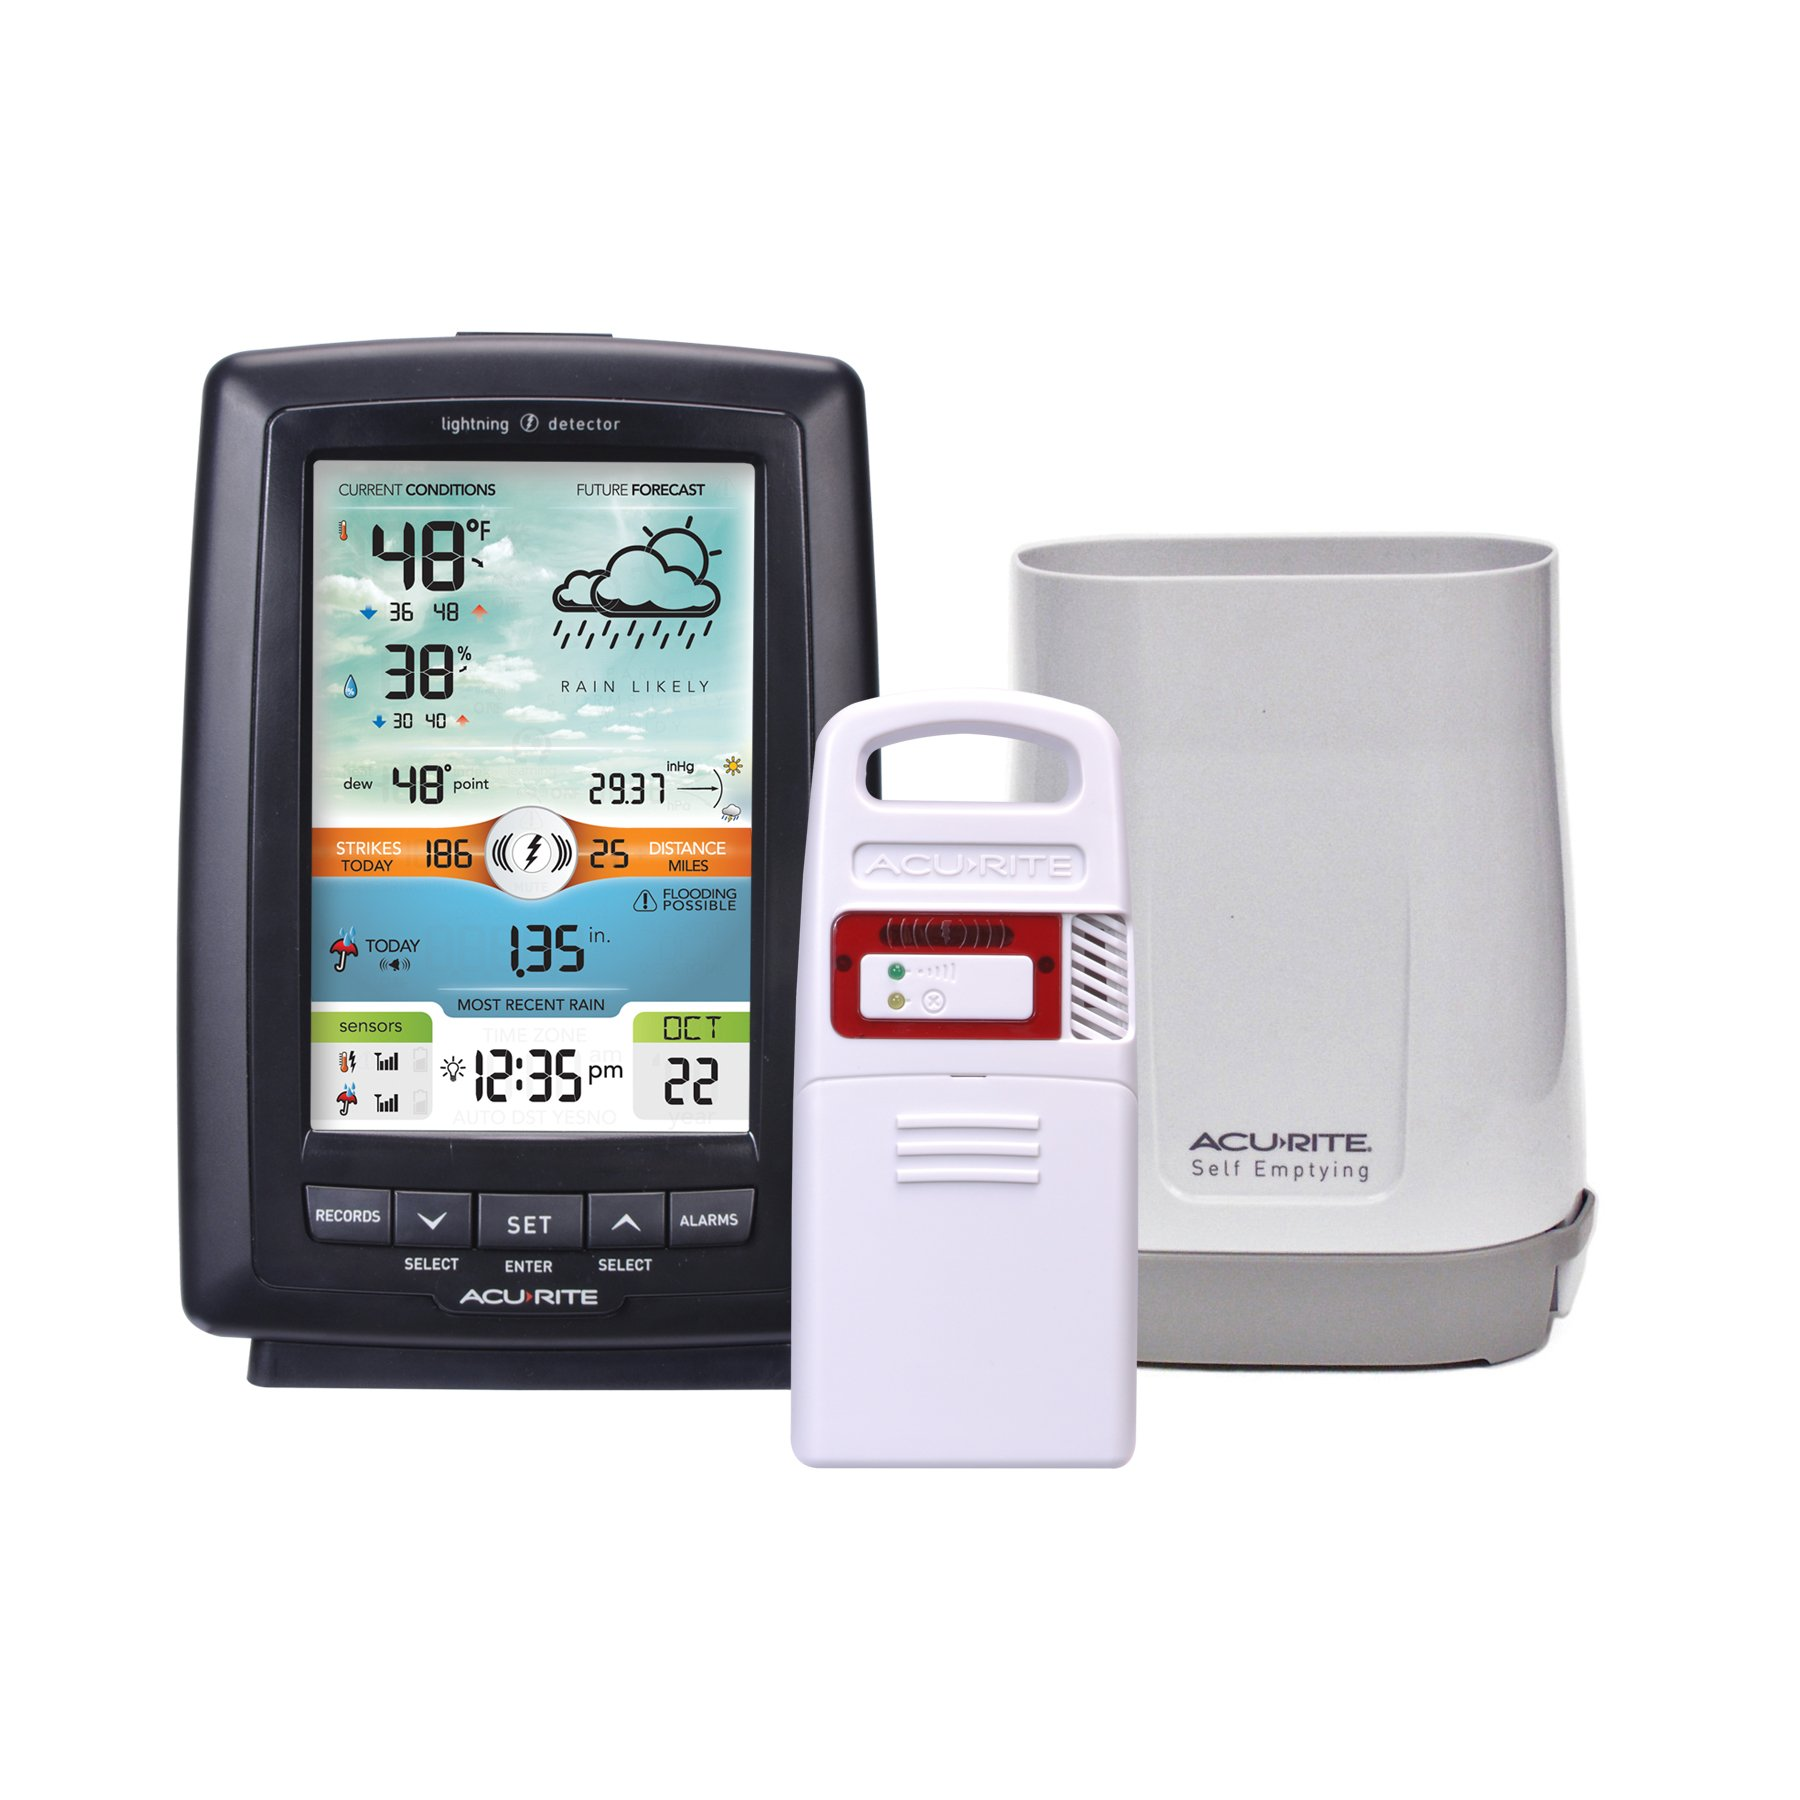 AcuRite 01021M Color Weather Station with Rain Gauge & Lightning Detector